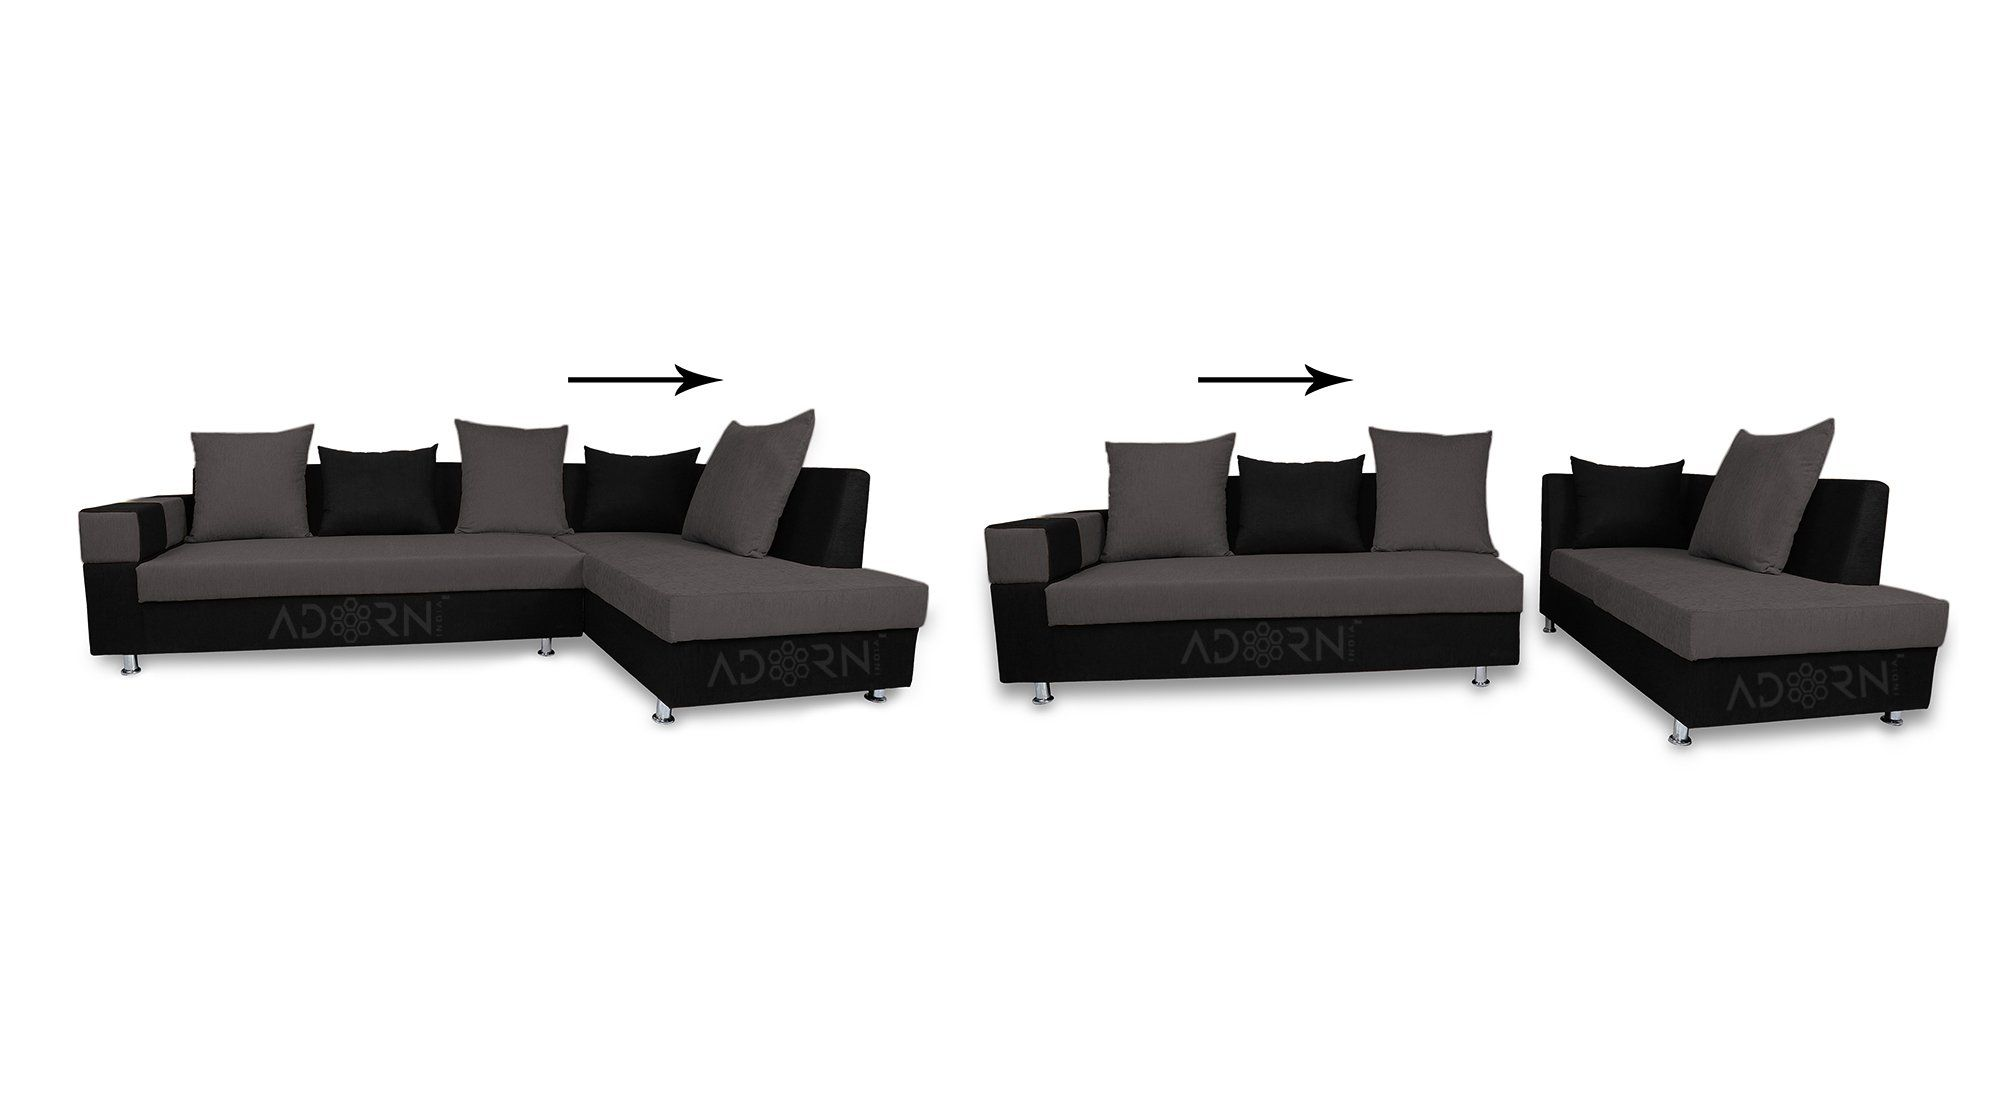 Adorn India Adillac 5 Seater Corner Sofa Right Side Grey Black Amazon In Electronics In 2020 5 Seater Corner Sofa Corner Sofa Outdoor Furniture Sets